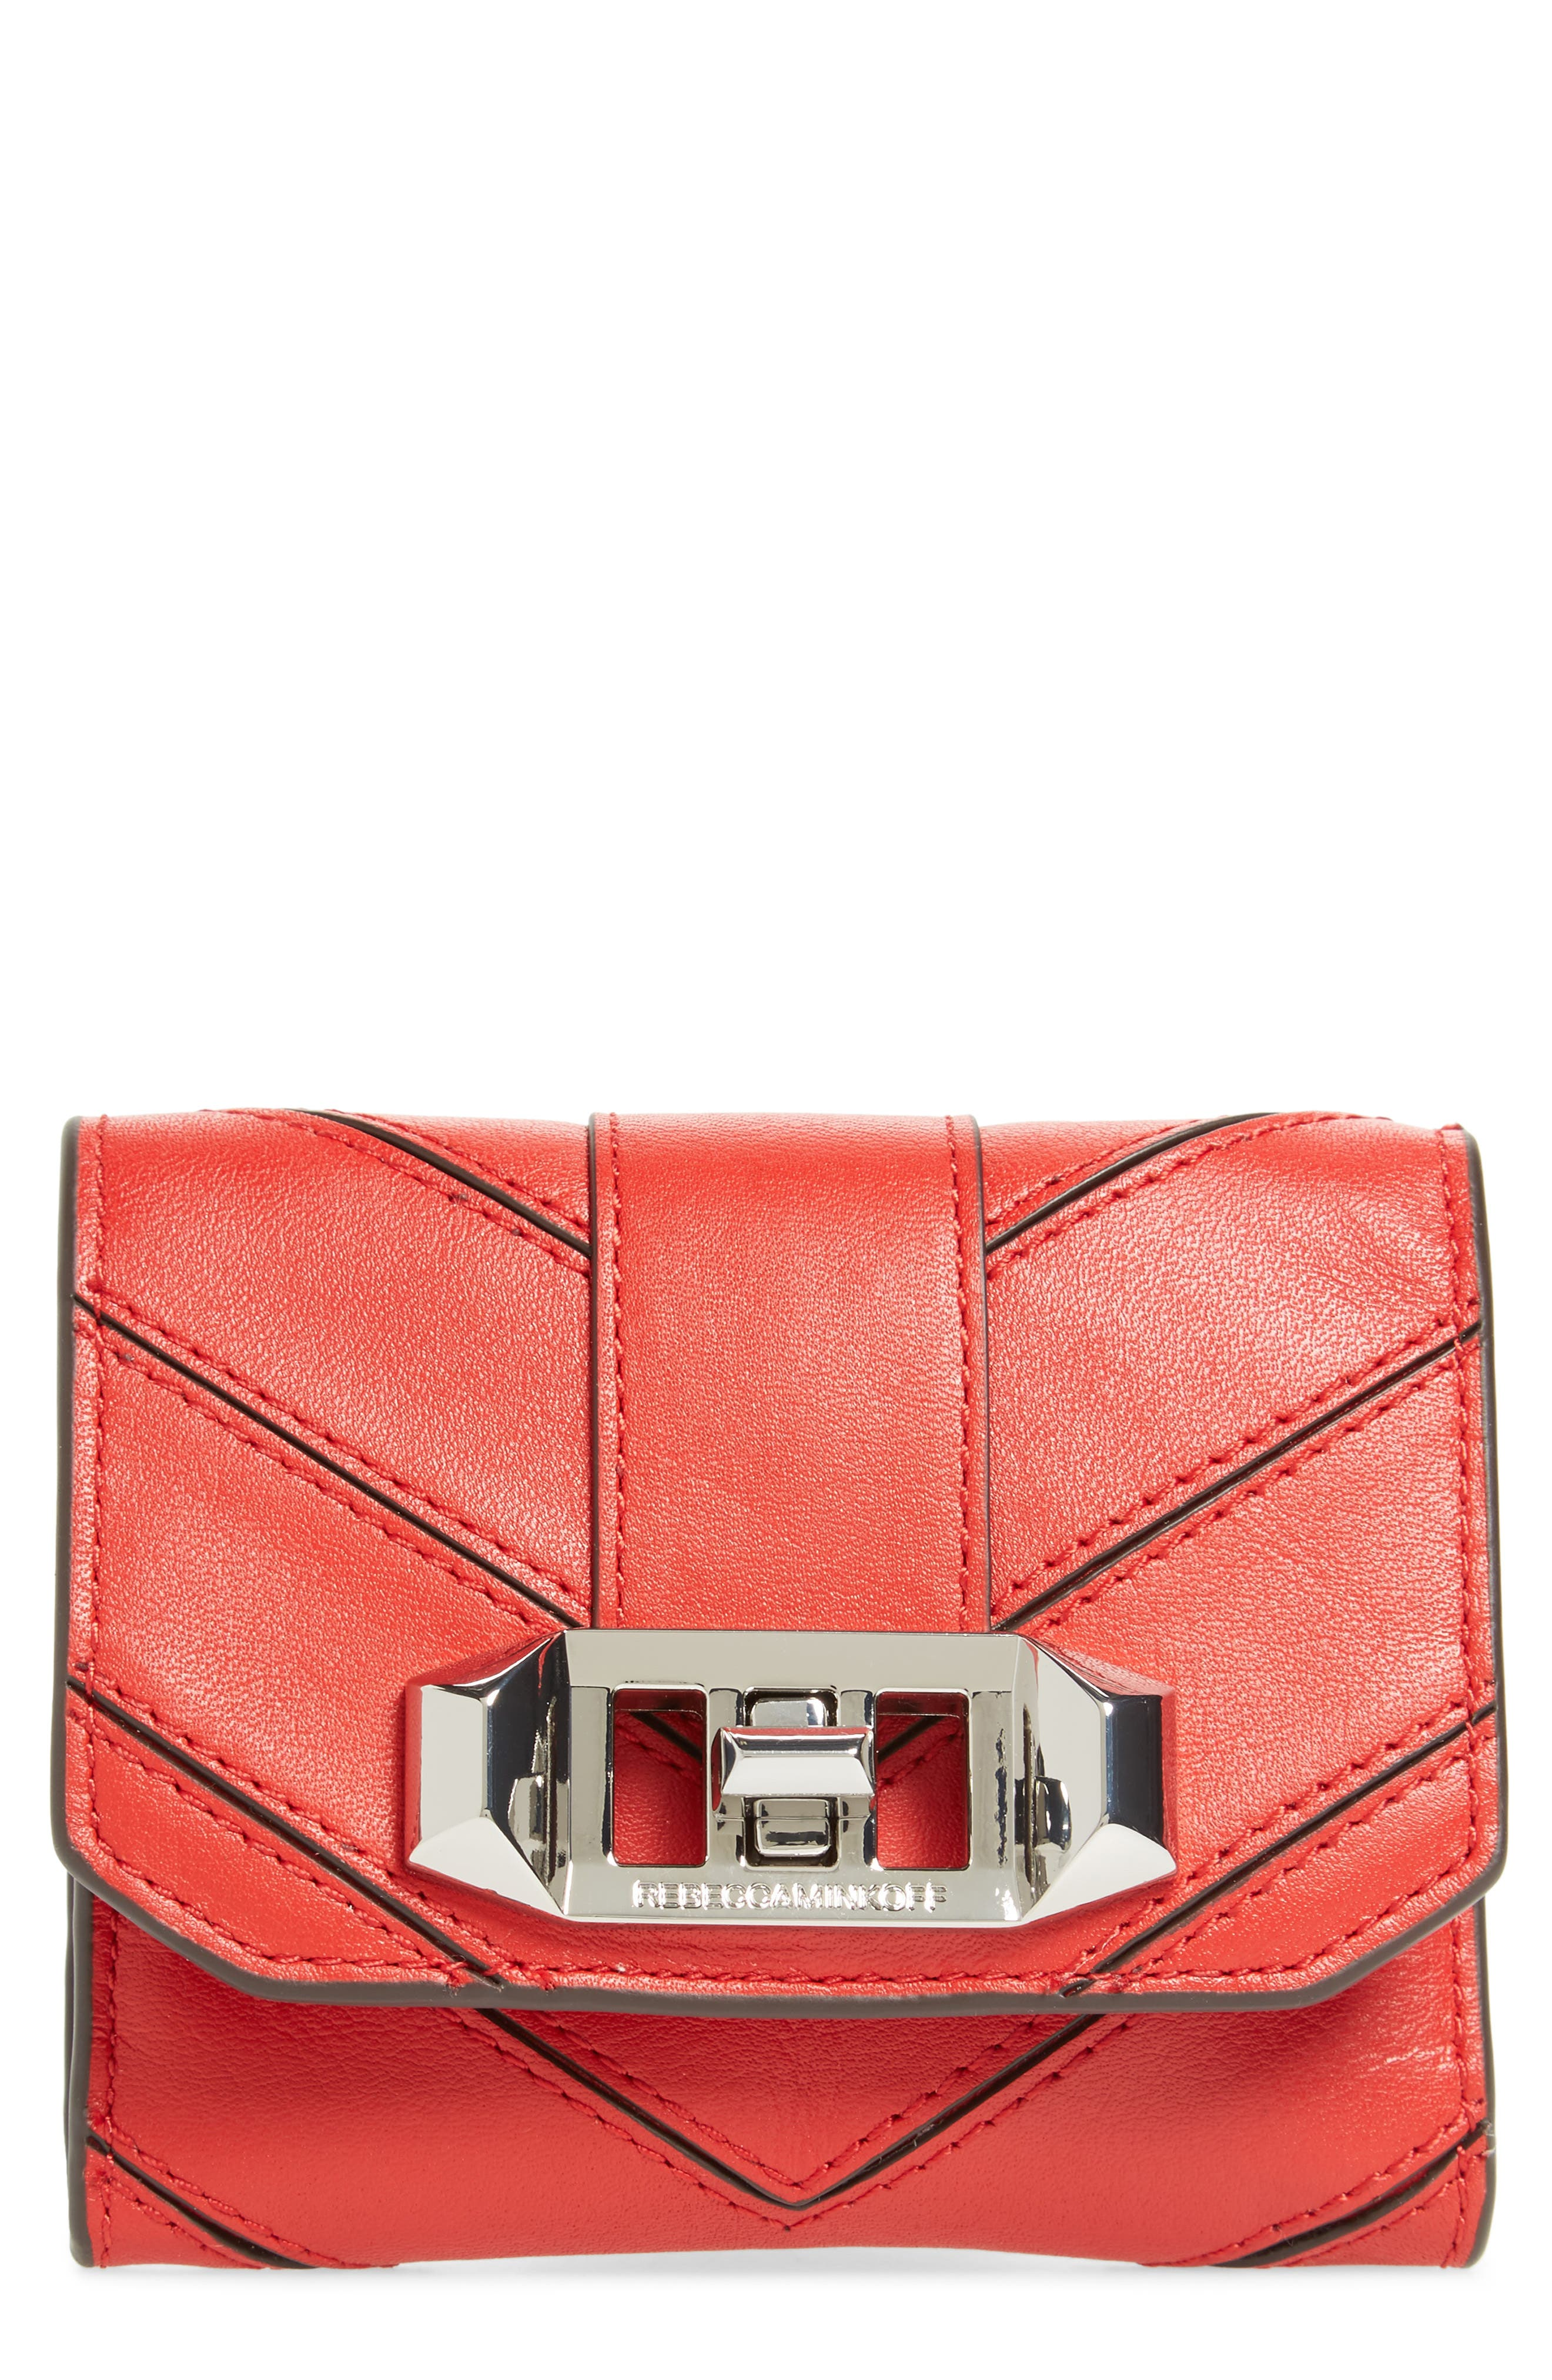 Love Lock Leather Wallet,                         Main,                         color, Carnation Red